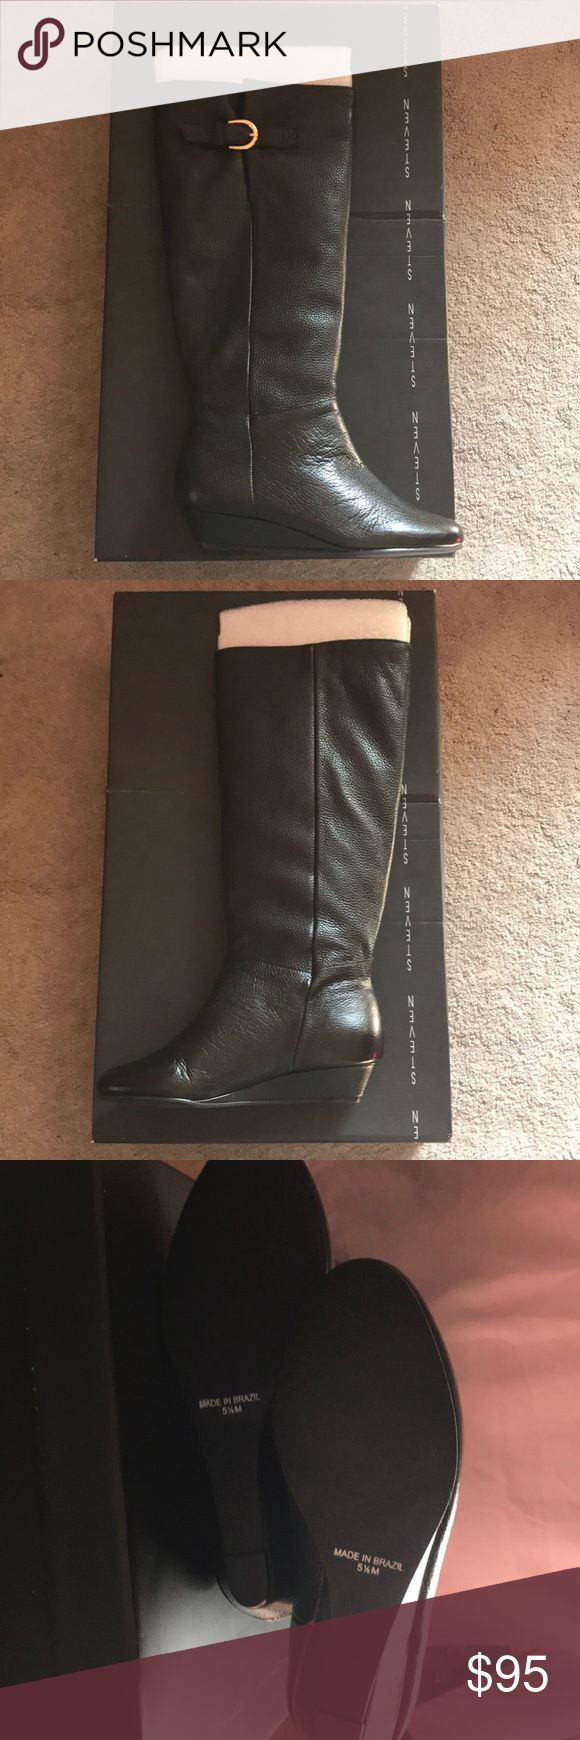 Steve Madden Black Leather Intyce Boots NEVER WORN! Beautiful soft interior with small heal and buckle detail on top Steve Madden Shoes Heeled Boots